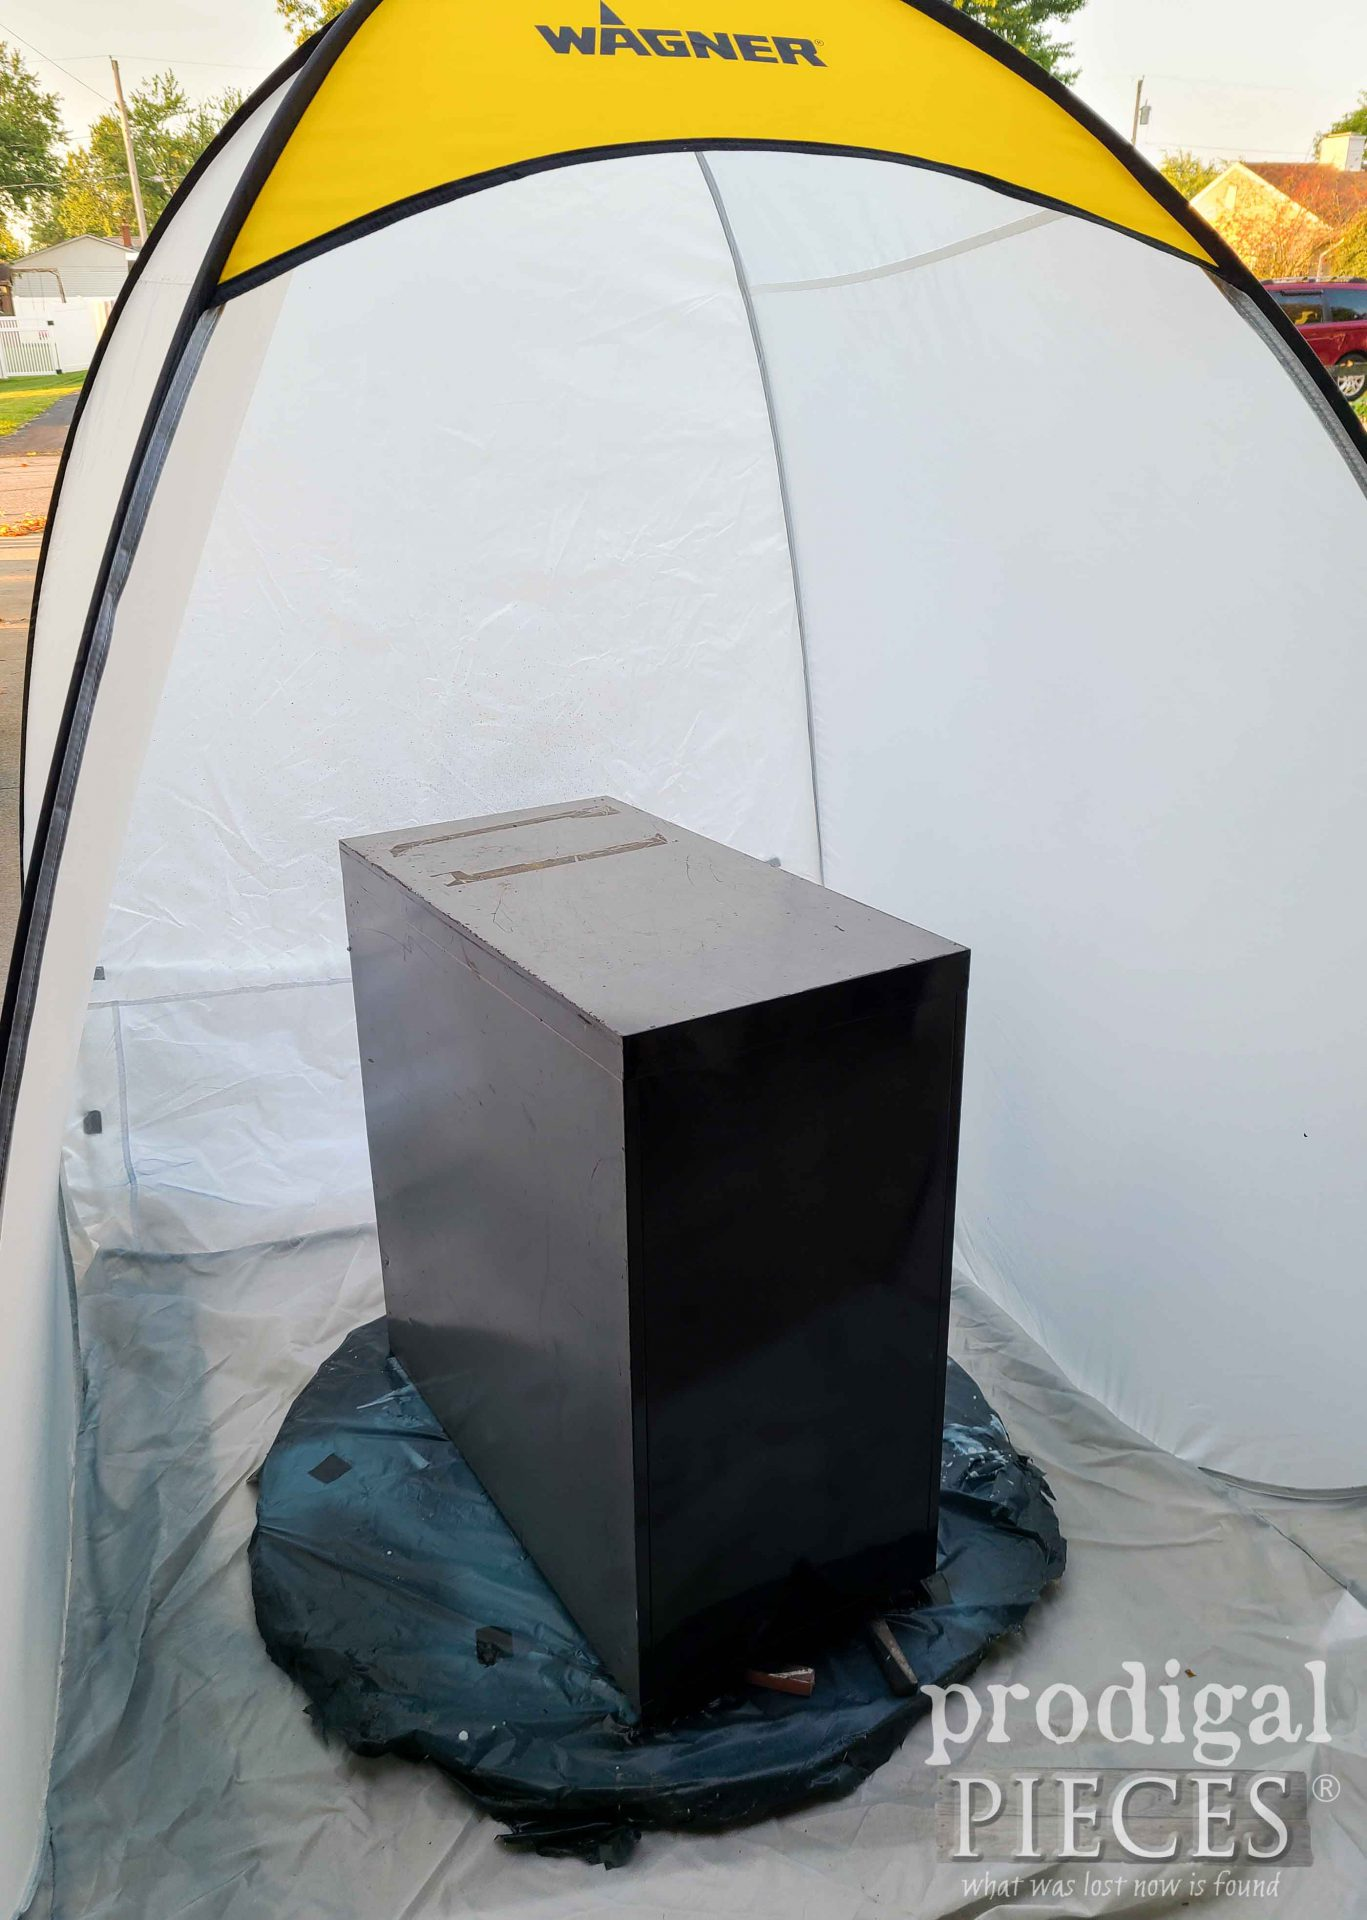 Spray Painting Filing Cabinet in Spray Shelter   prodigalpieces.com